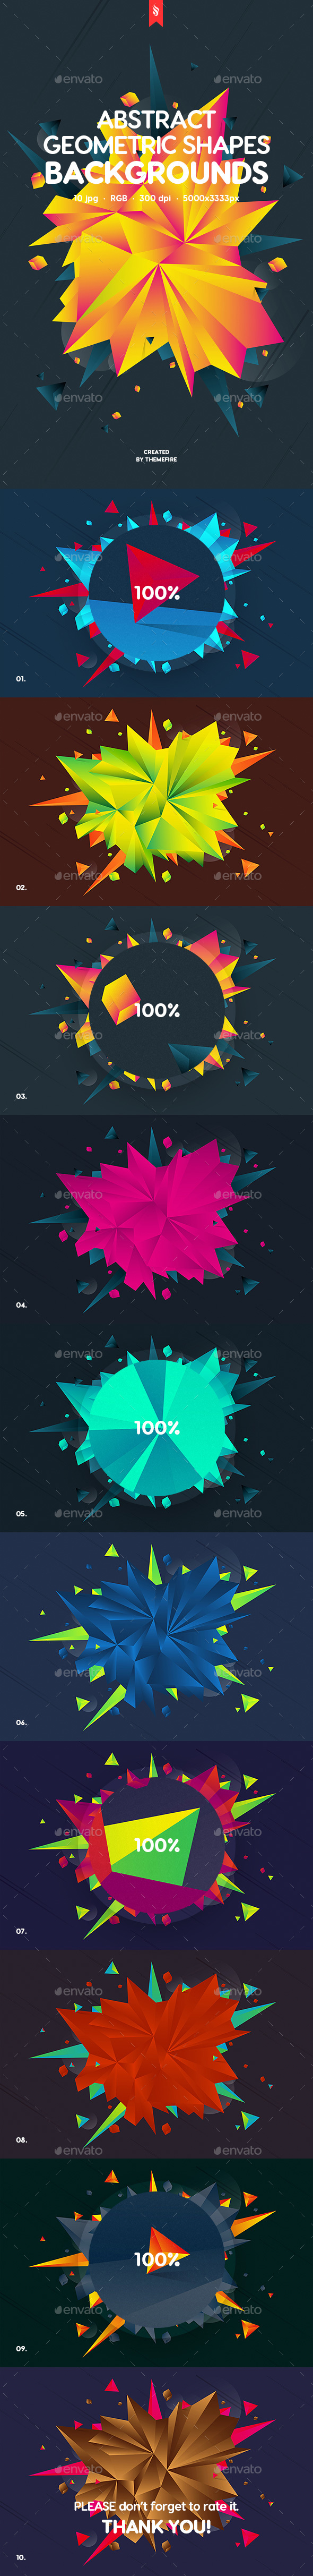 Abstract Geometric Shapes Backgrounds